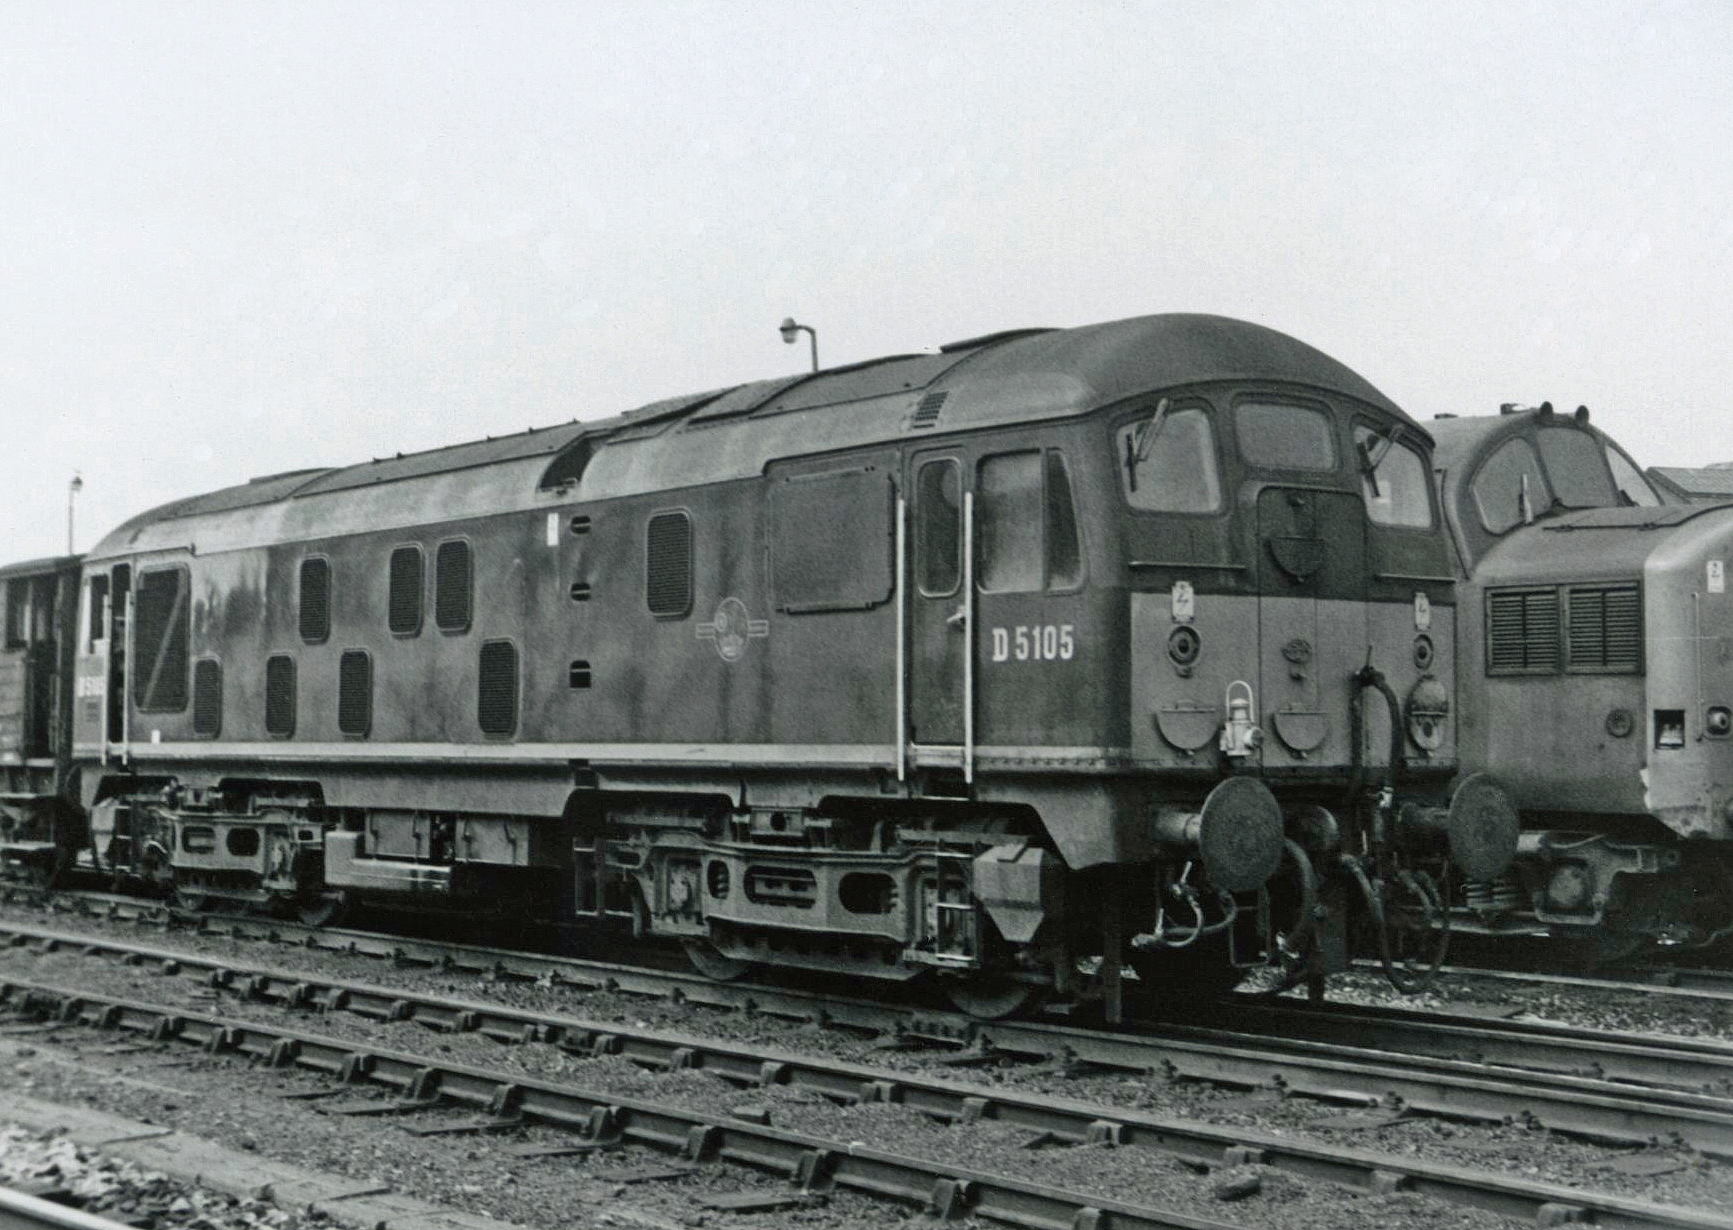 D5105 at Gateshead on 6 August 1967.